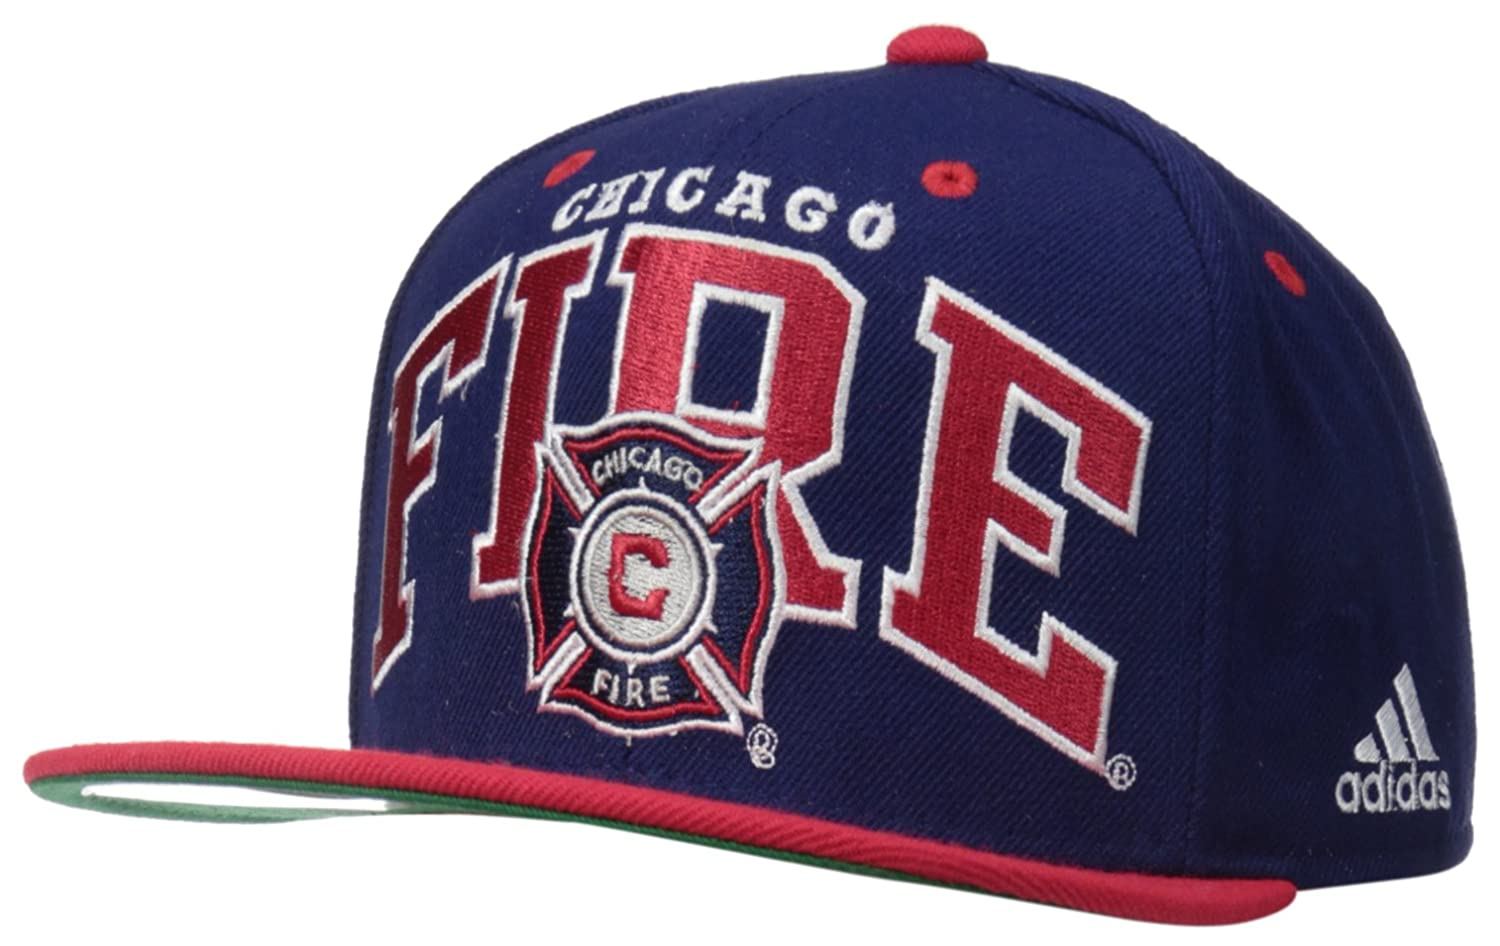 33bf6d92b05 adidas MLS Chicago Fire Men s Name Two Tone Flat Brim Snapback Hat ...